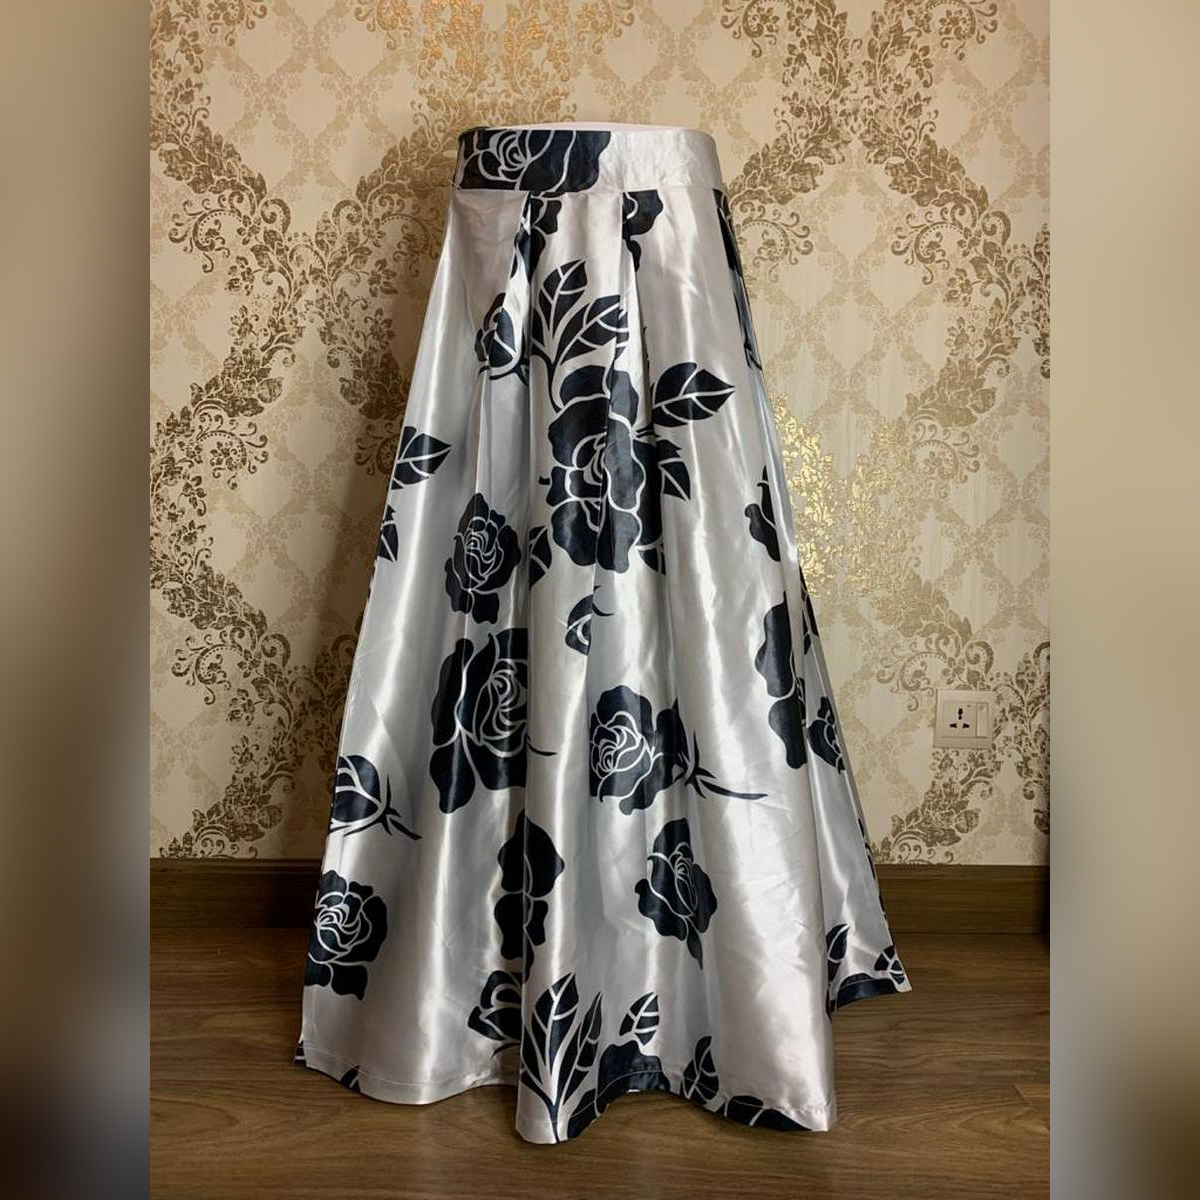 High Waist Flared Maxi Skirts Retro Floral Printed Pleated.